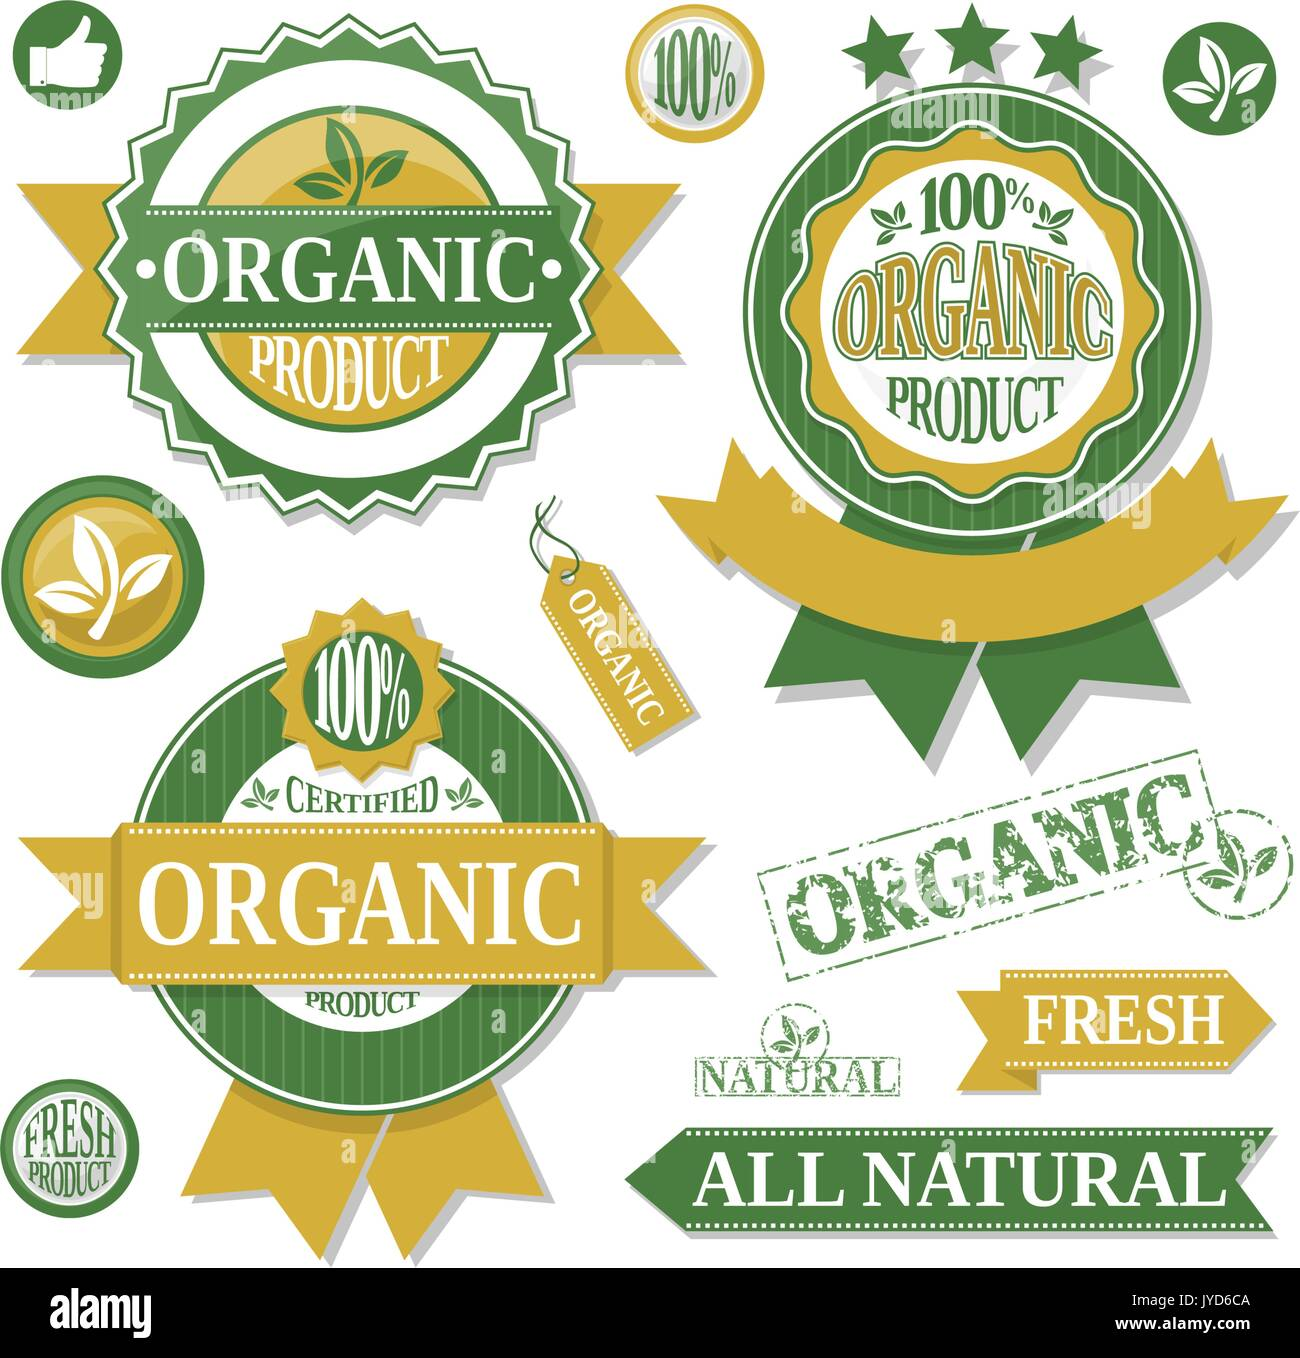 organic products labels and design elementsisolated on white